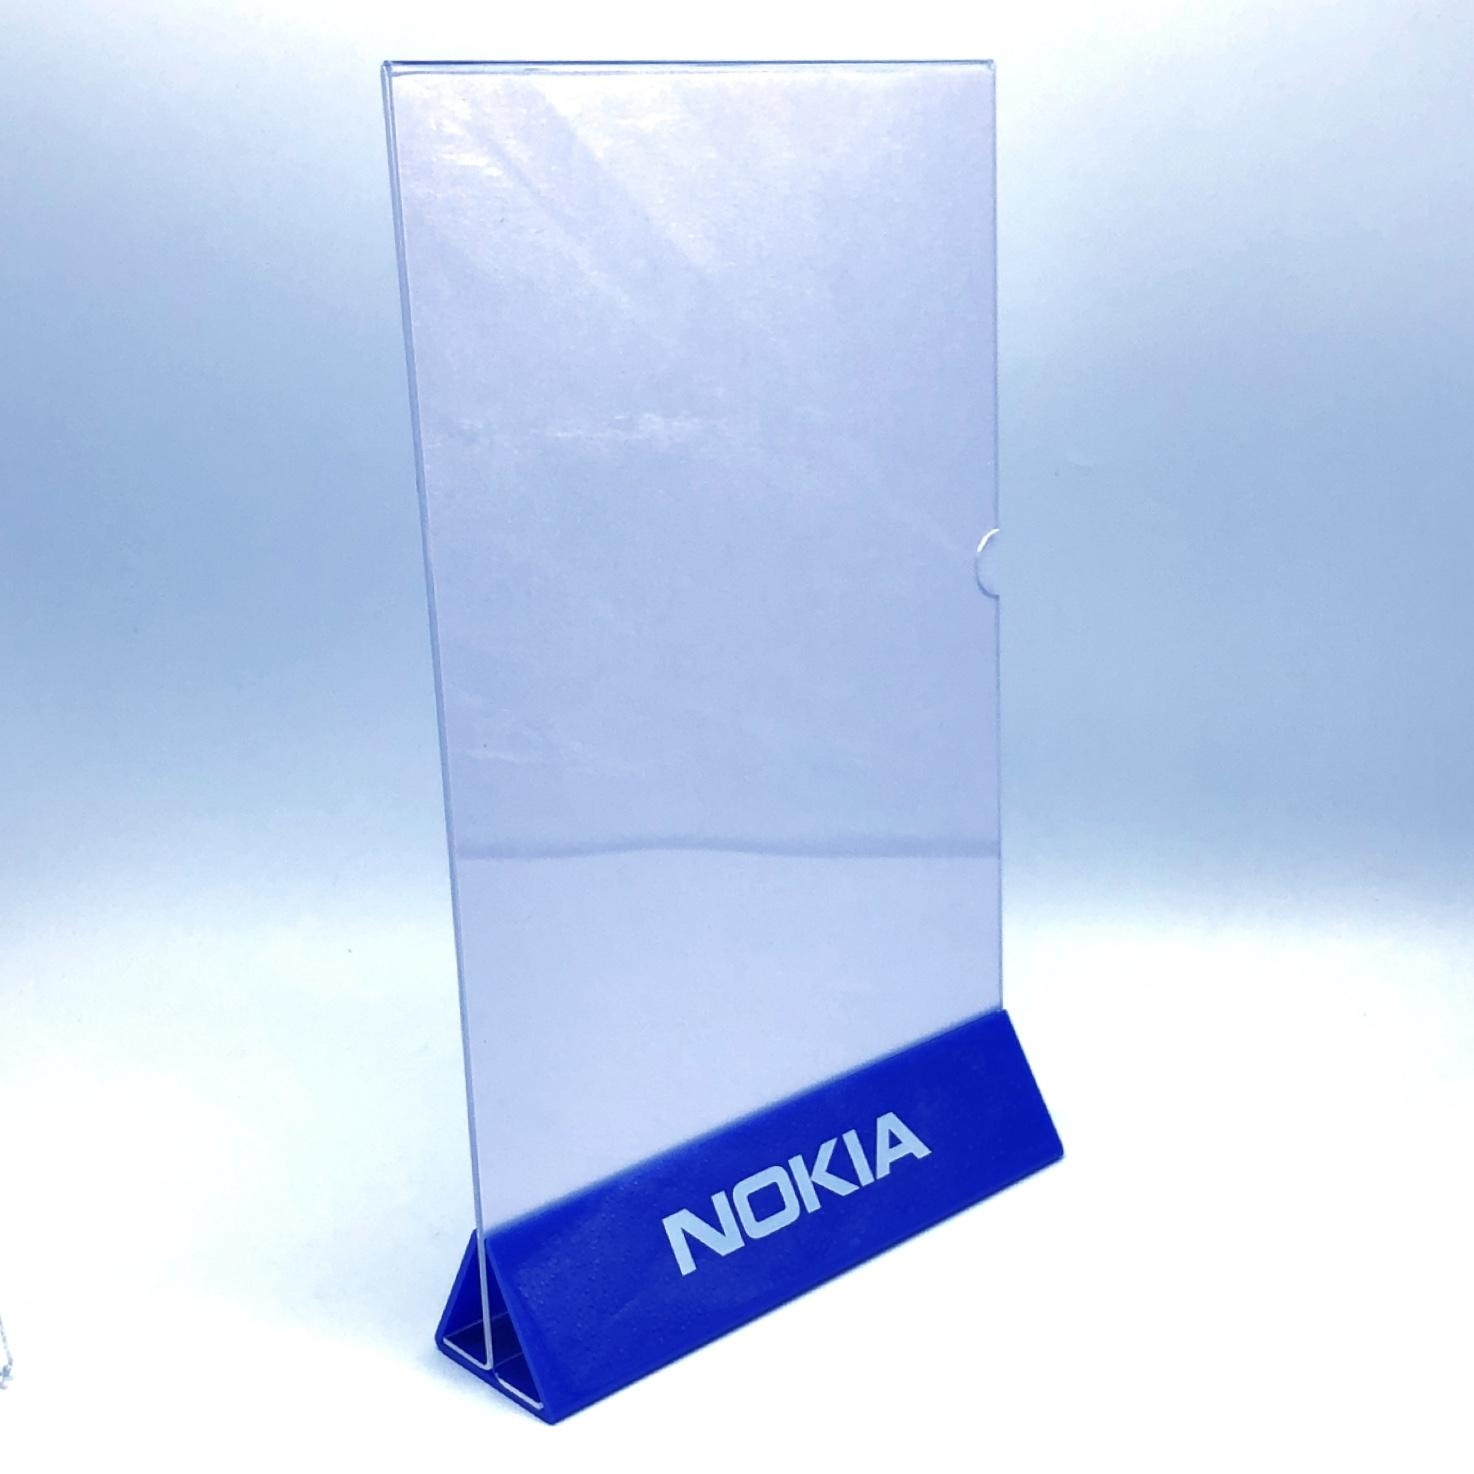 Acrylic Brochure holder,sign holder,Acrylic leaflet stand,A4 size leaflet stand,acrylic sign holder